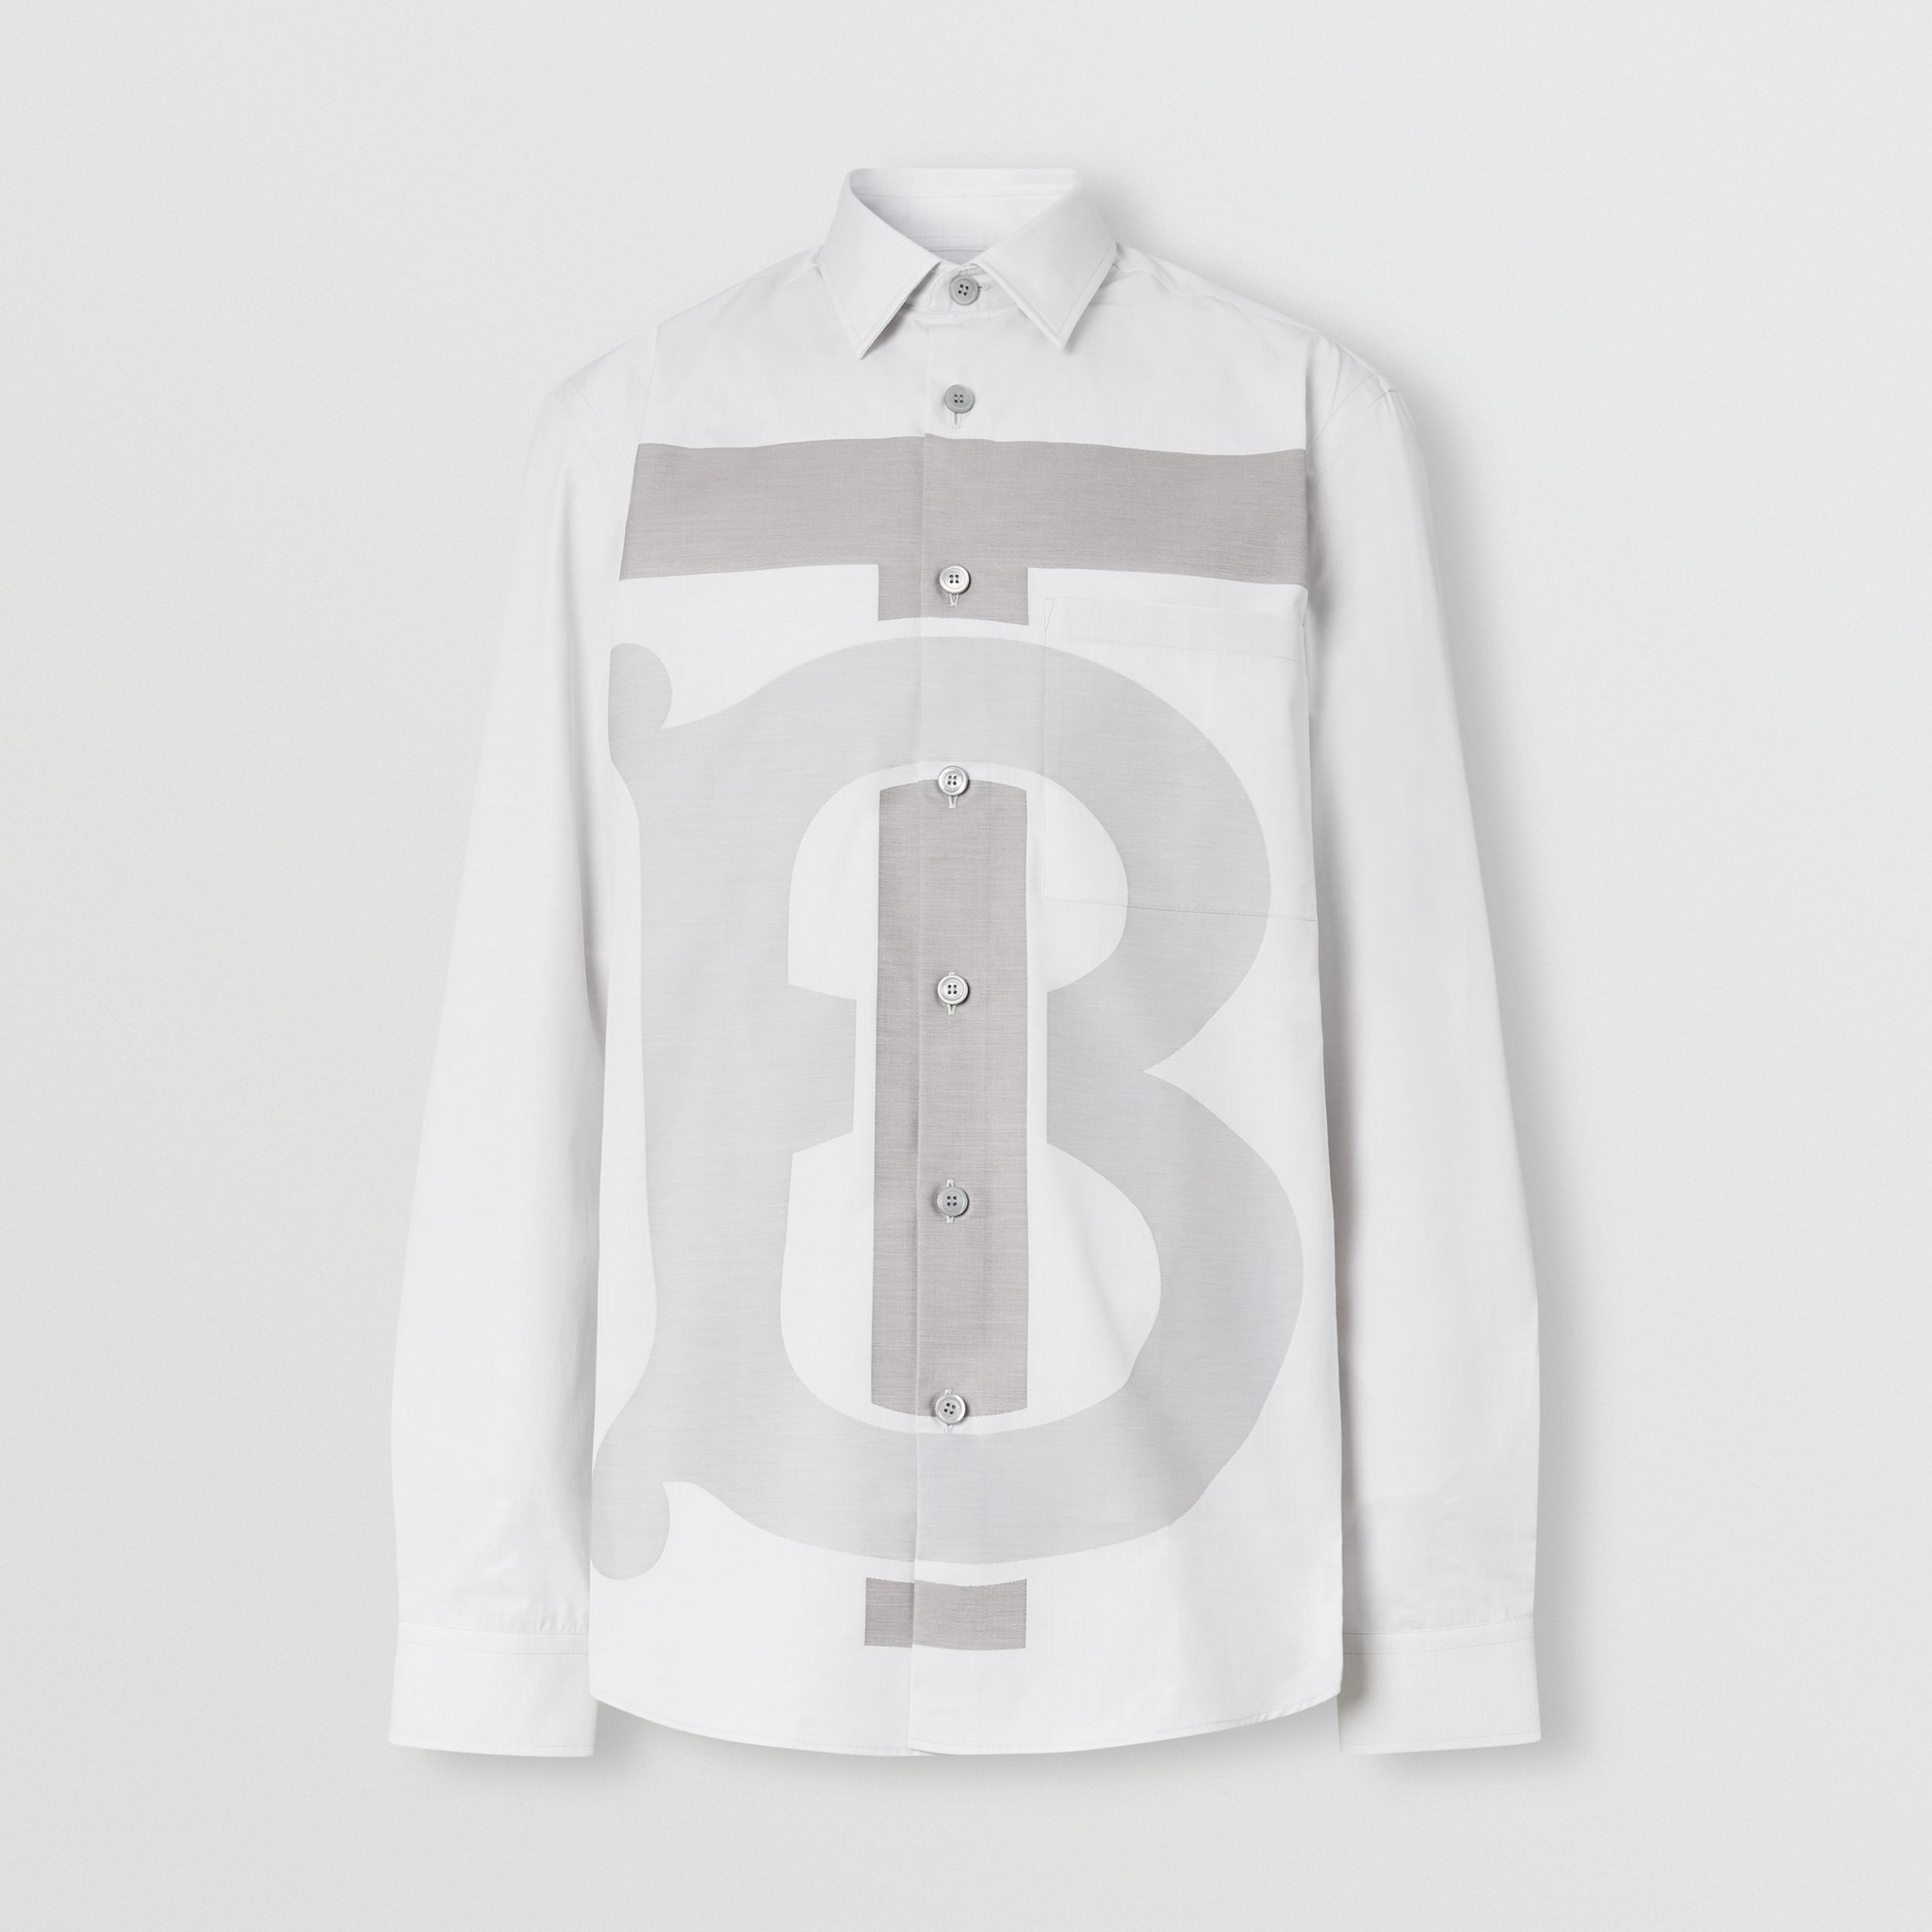 Slim Fit Monogram Motif Cotton Shirt in Pebble Grey - Men | Burberry - 4